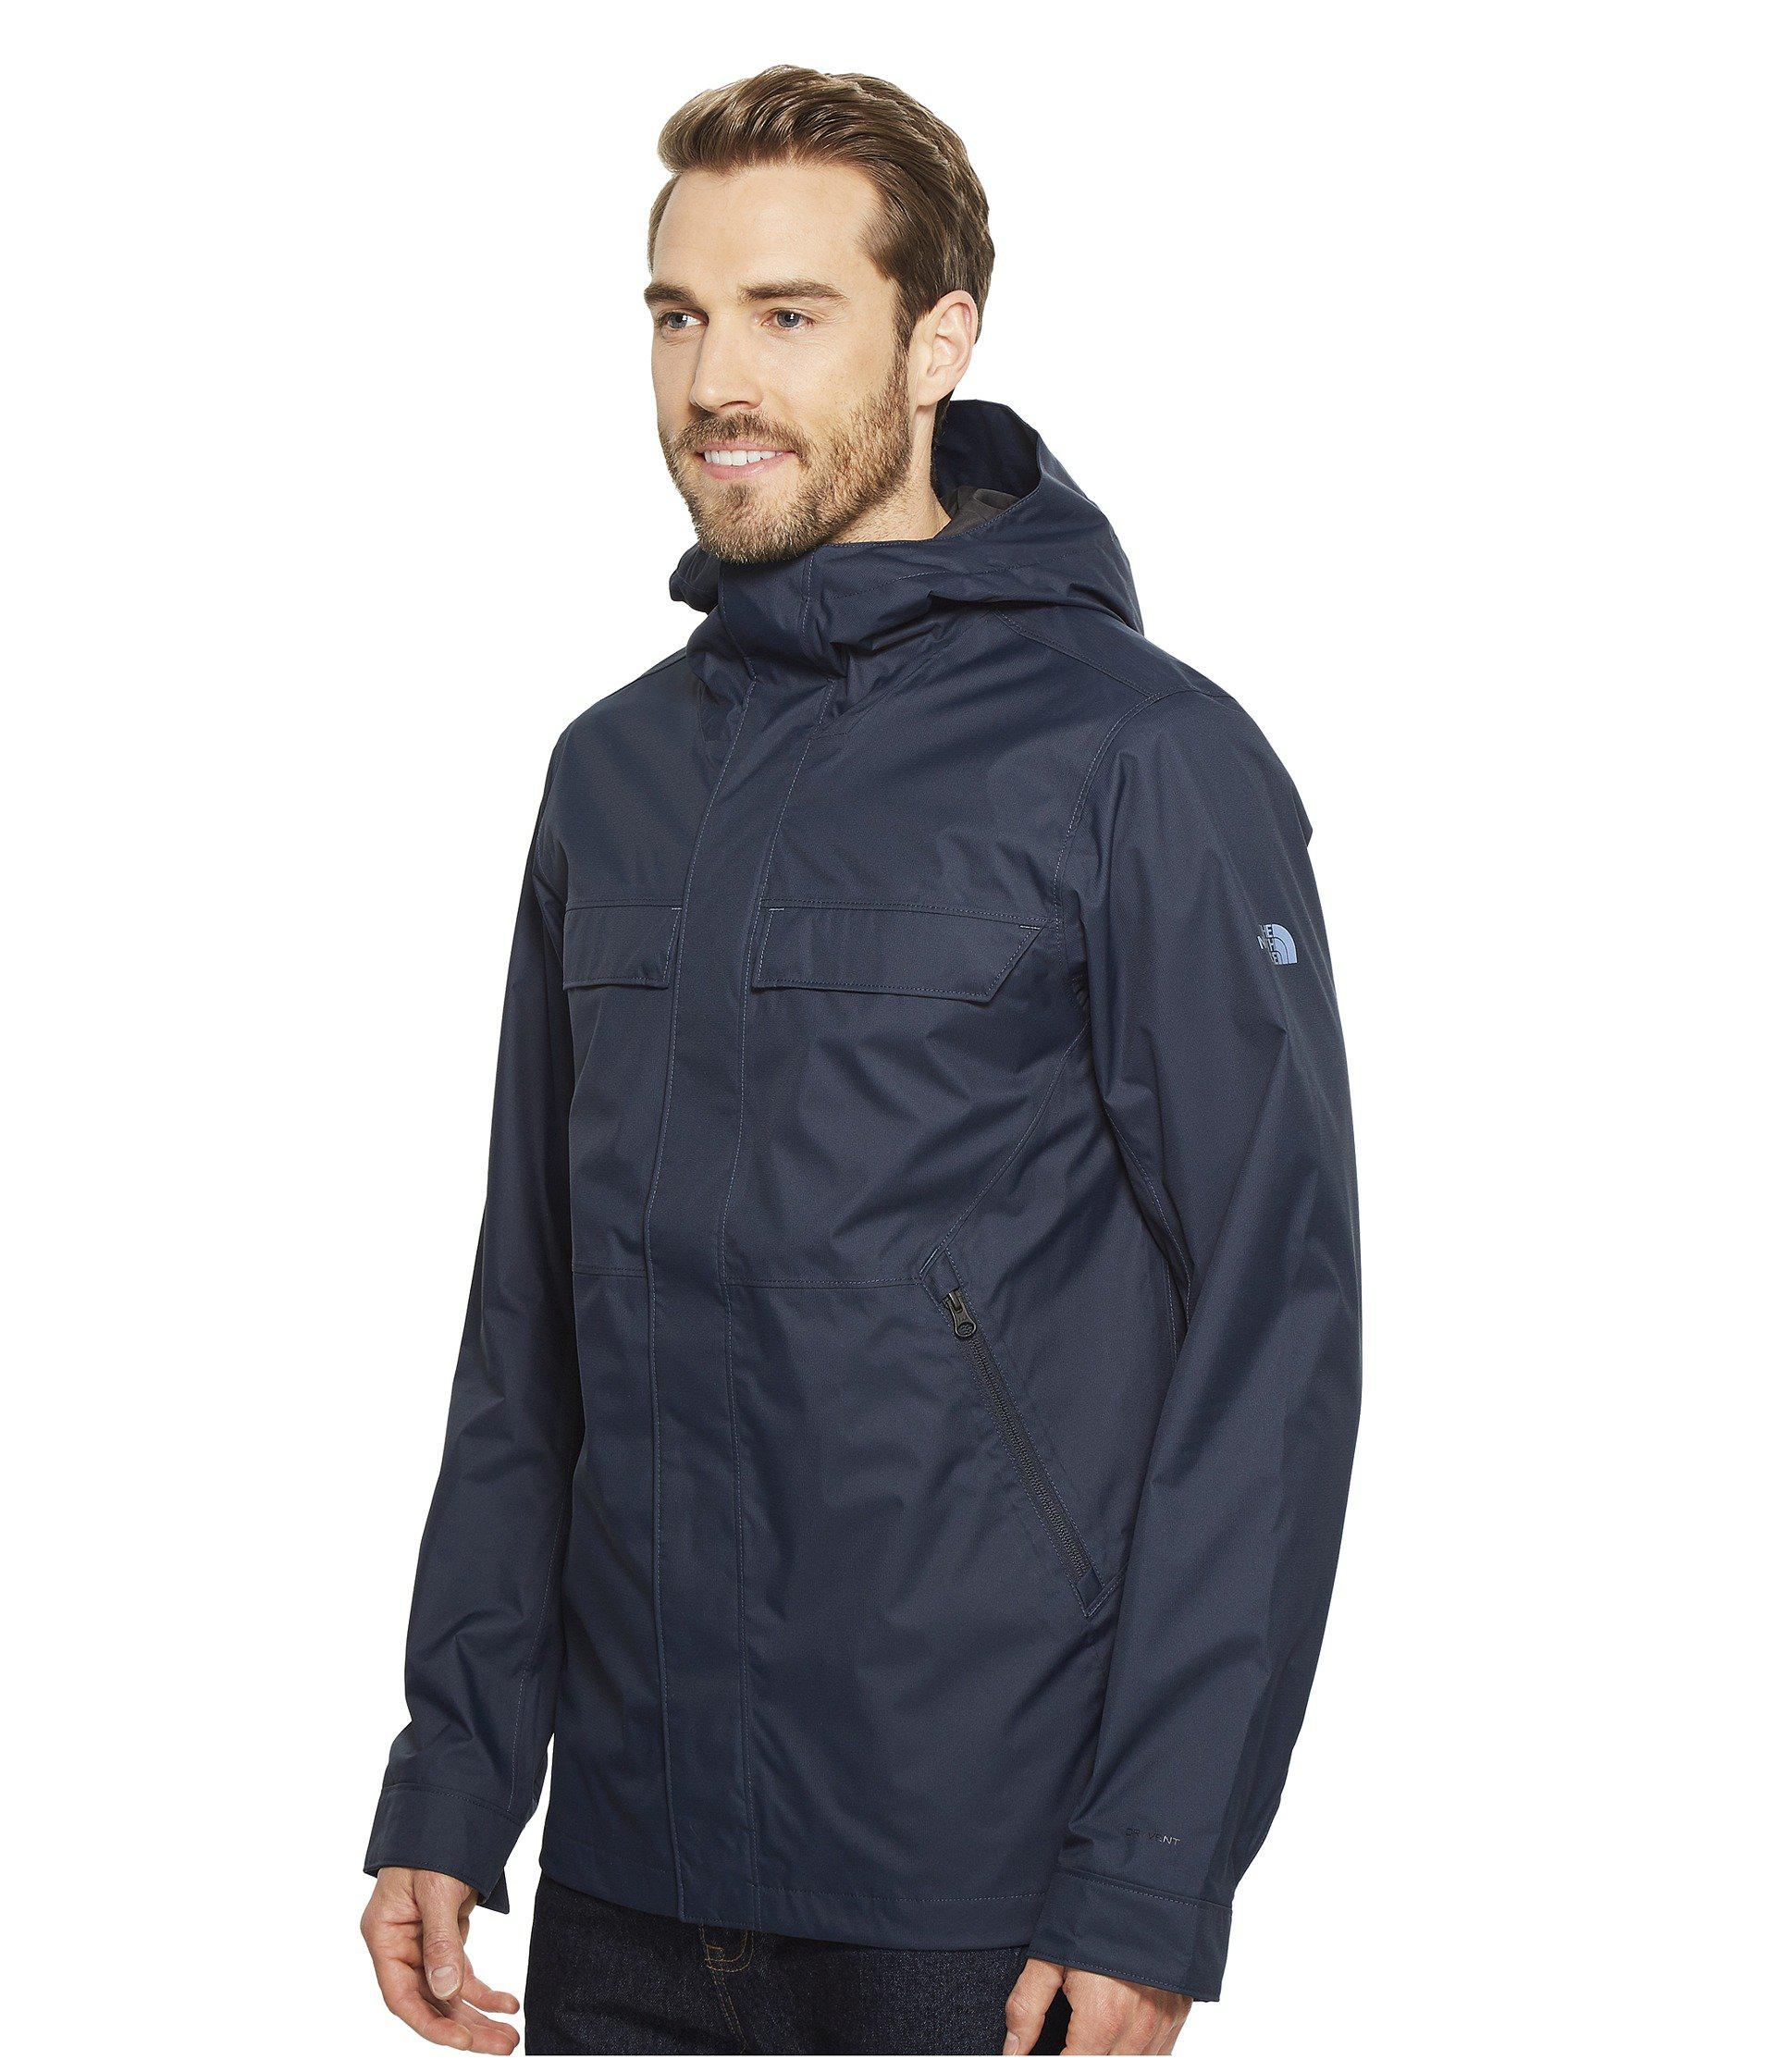 6eb693a17d Lyst - The North Face Jenison Ii Jacket in Blue for Men - Save 22%